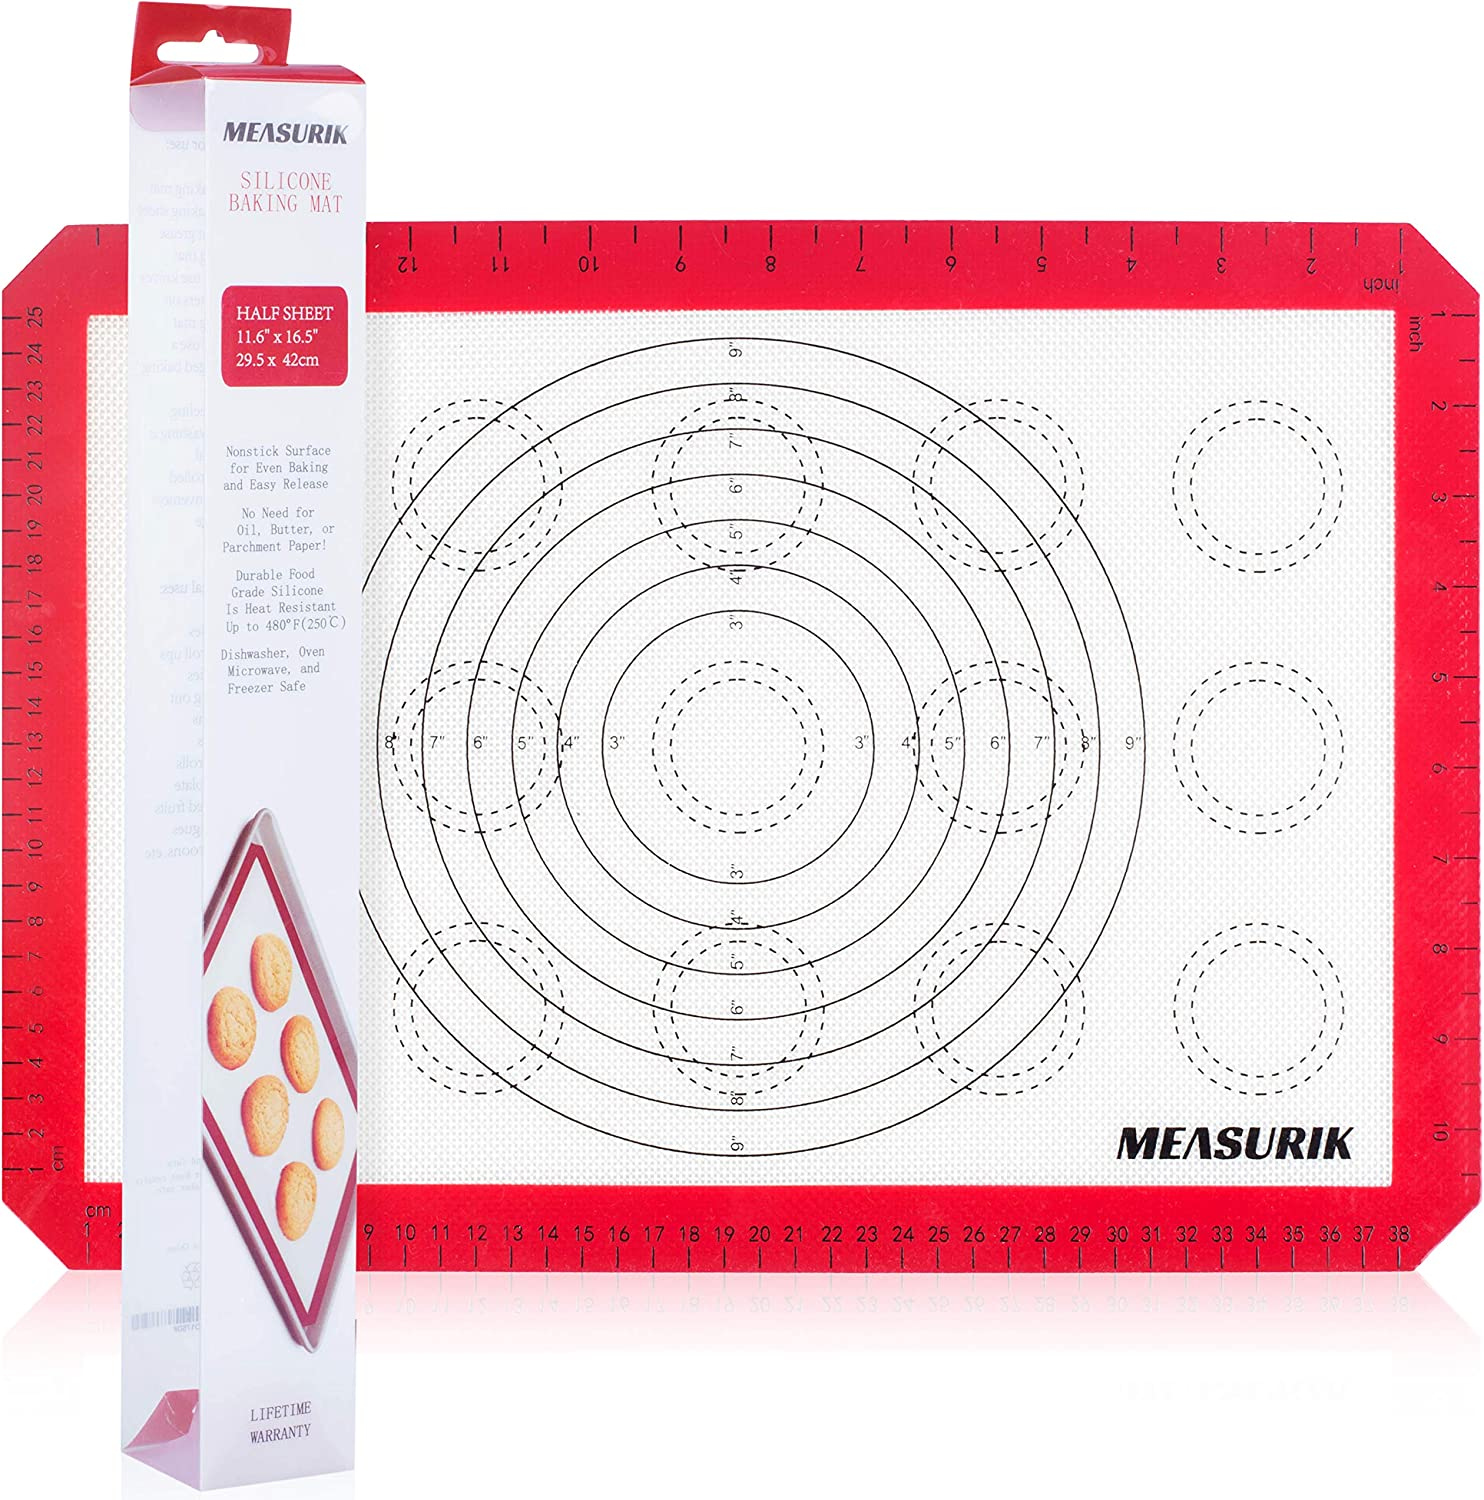 Silicone Macaron Baking Mat - Single Non-Stick 11 5/8''(W)16.5''(L) US Half Size Baking Pastry Sheet, Food Grade BPA Free Reusable Oven Liner Baking With Measurement